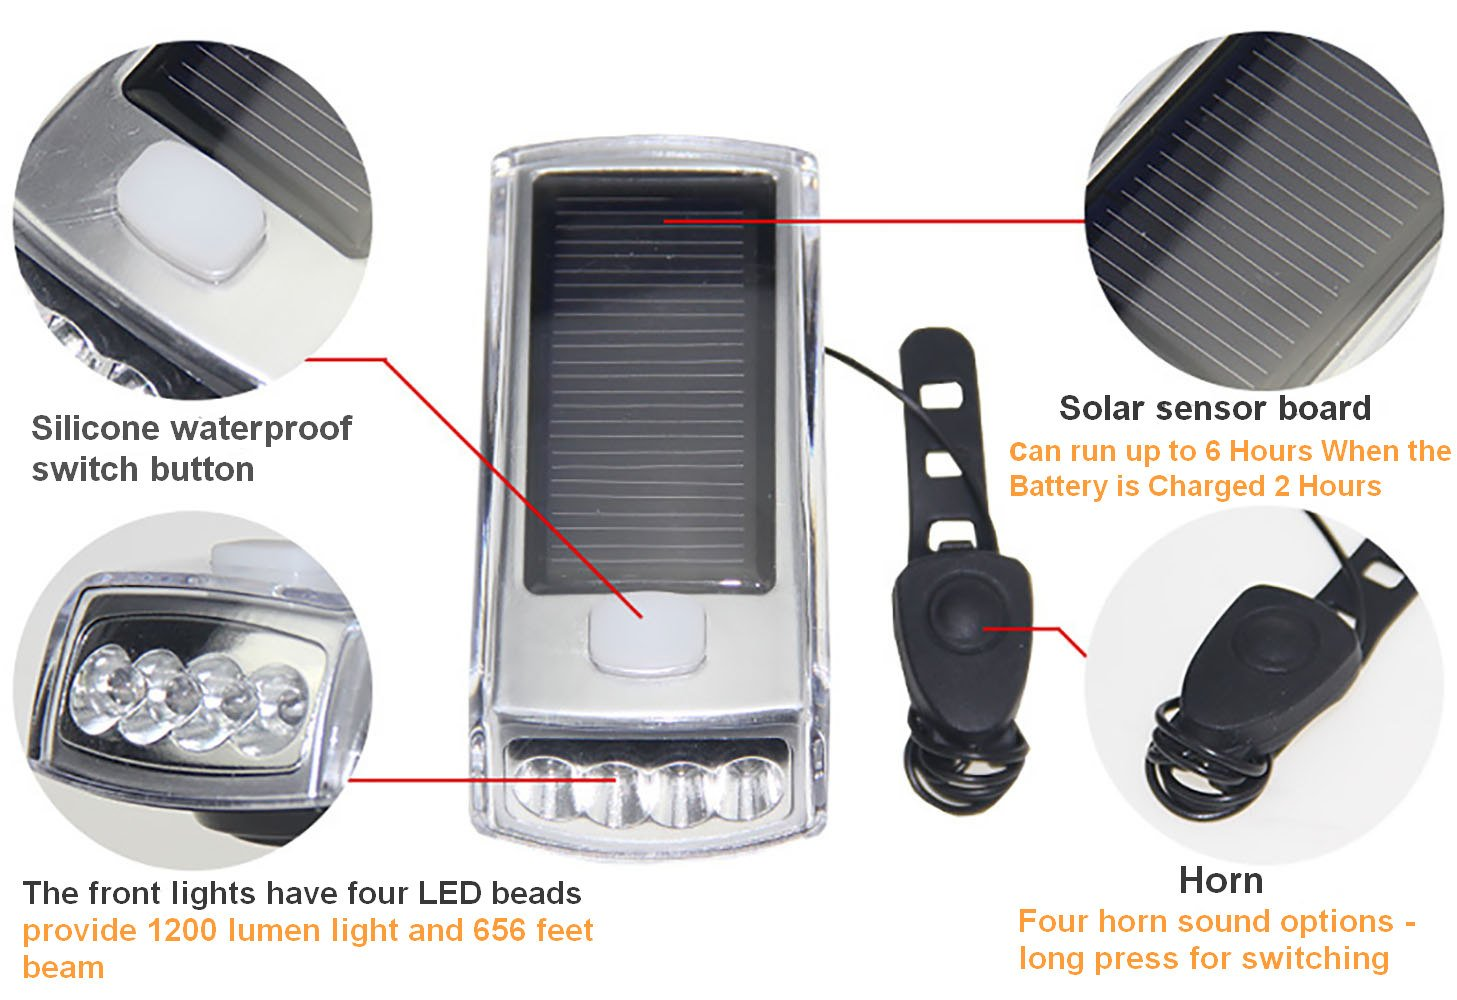 Ultra Bright Bicycle Lights Set - Front Headlights & Horn & Back Taillights, Two(Solar and USB)-in-One Rechargeable LED Bike Front Lights, Waterproof & Safety Road, 1200mAH/1200 Lumens Head Lights. by Juxical (Image #2)